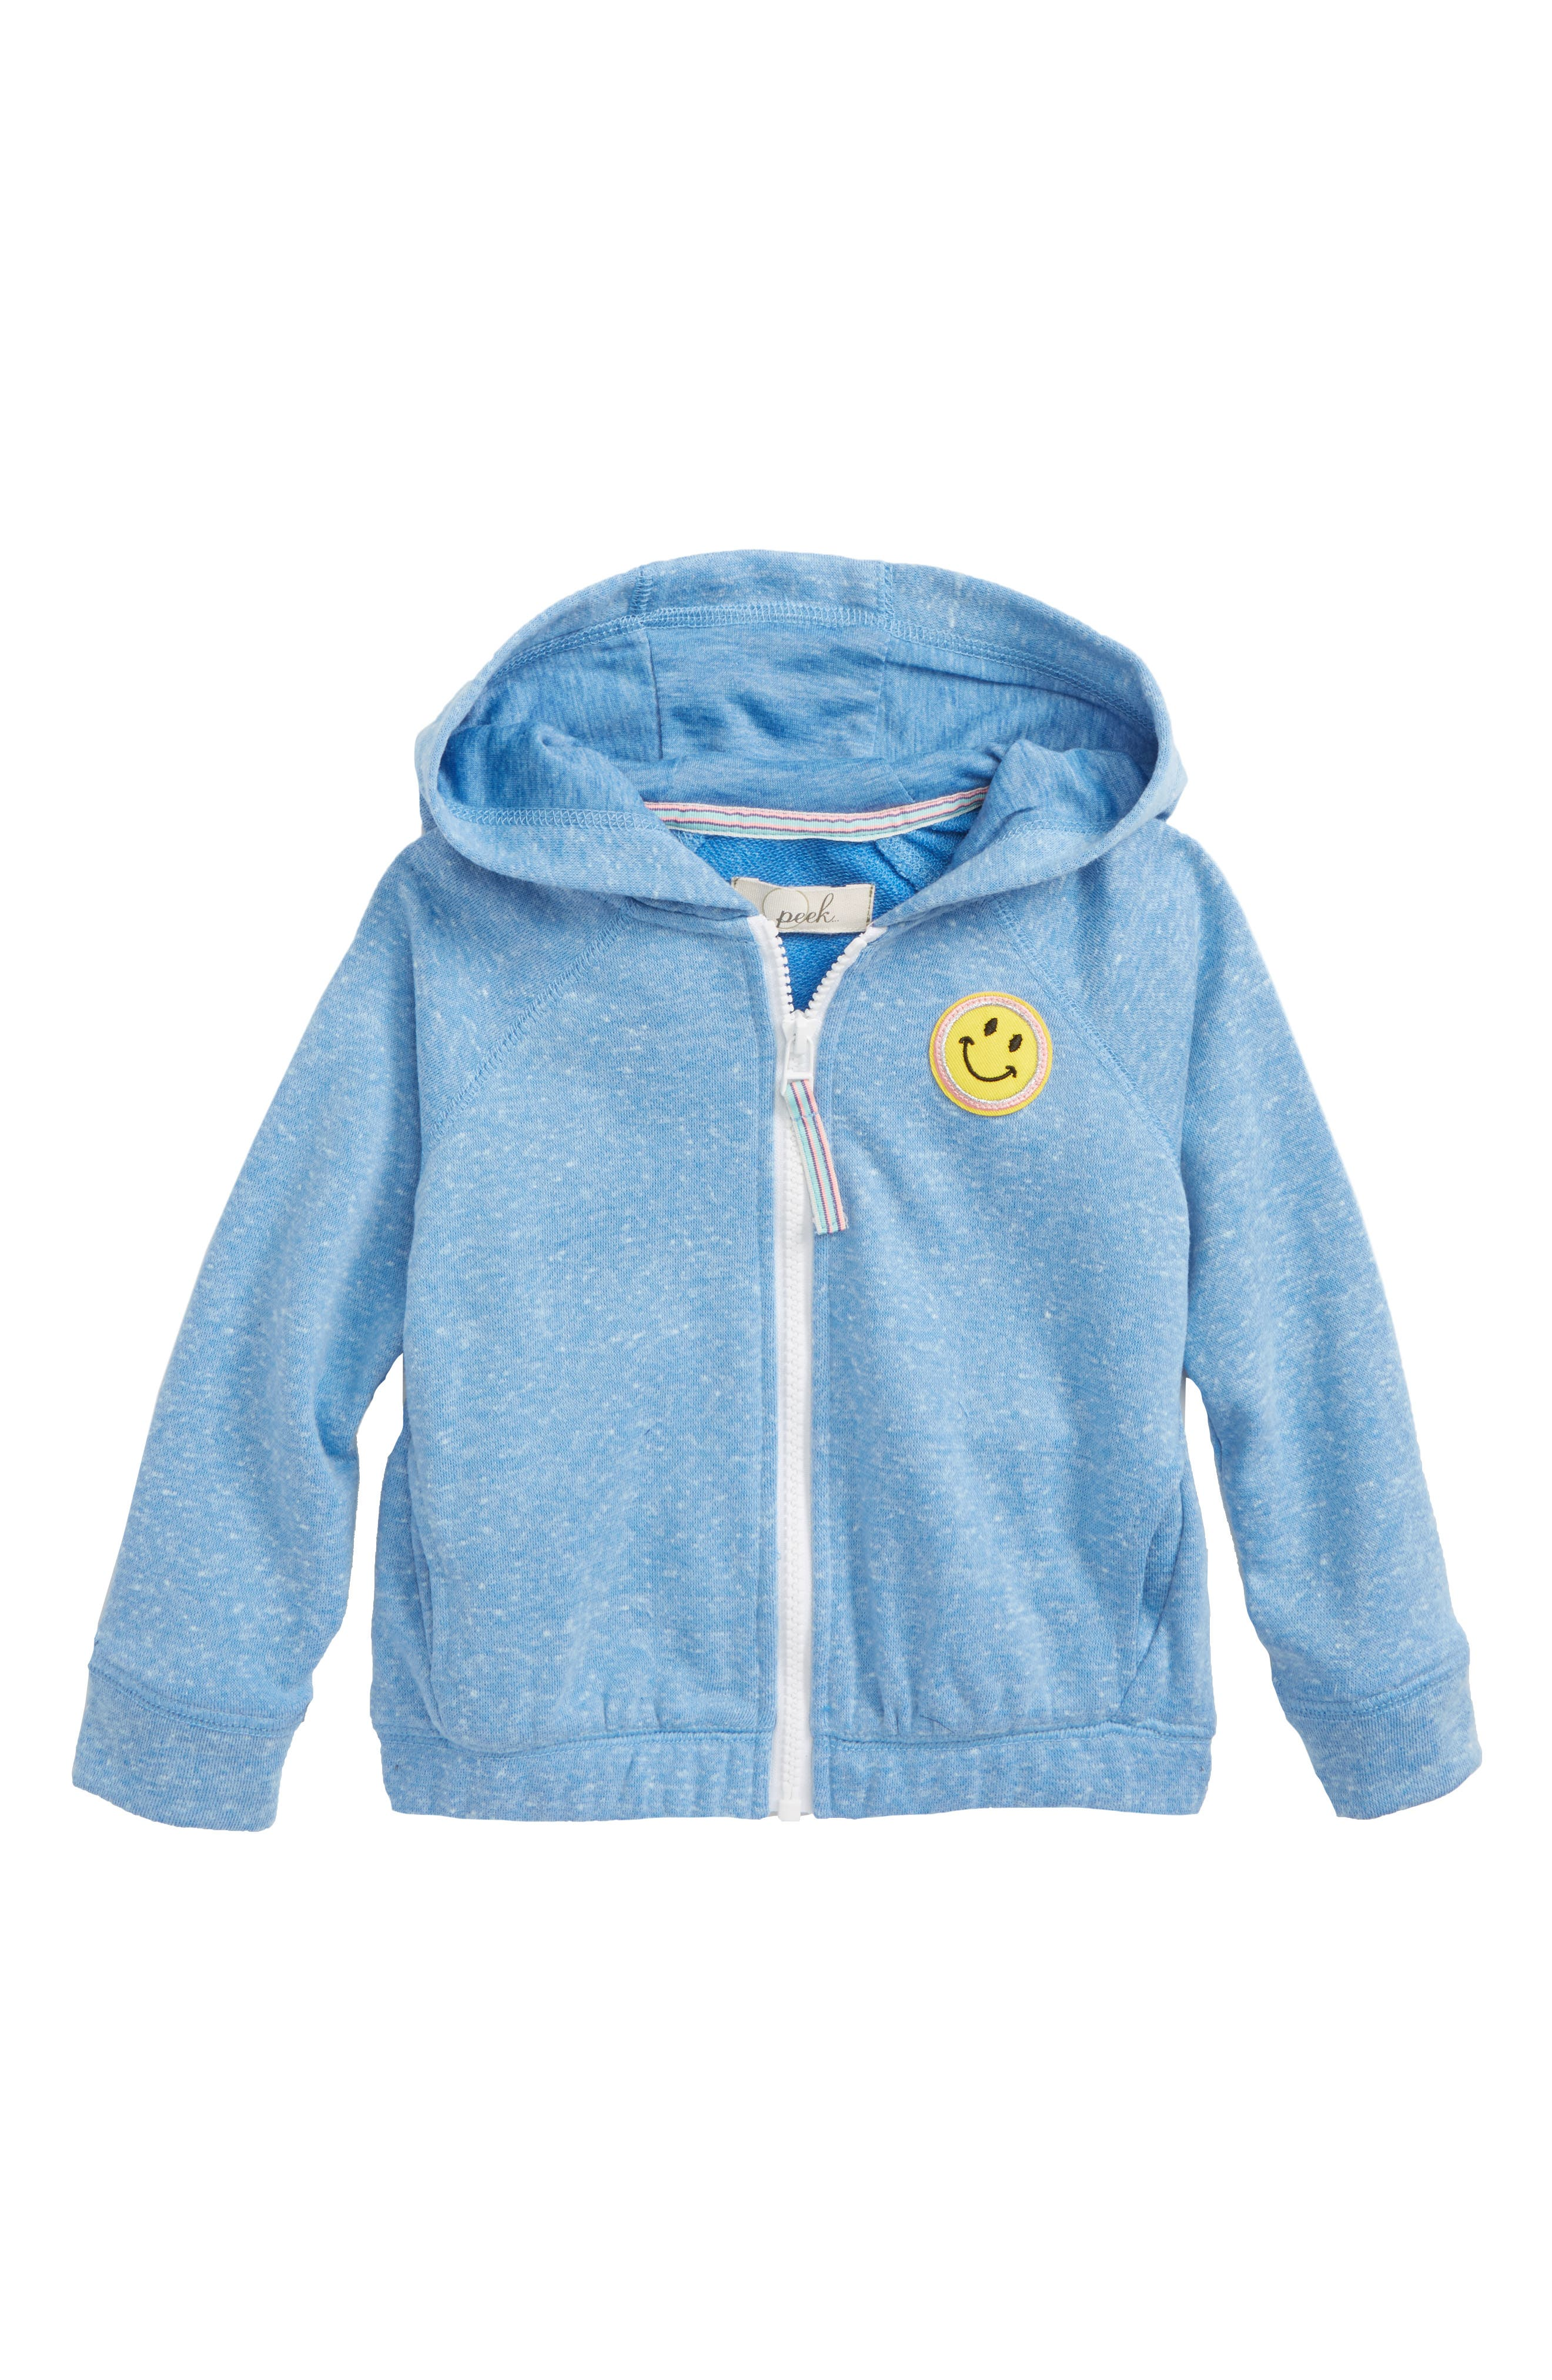 PS I Love You Full Zip Hoodie,                         Main,                         color, Blue